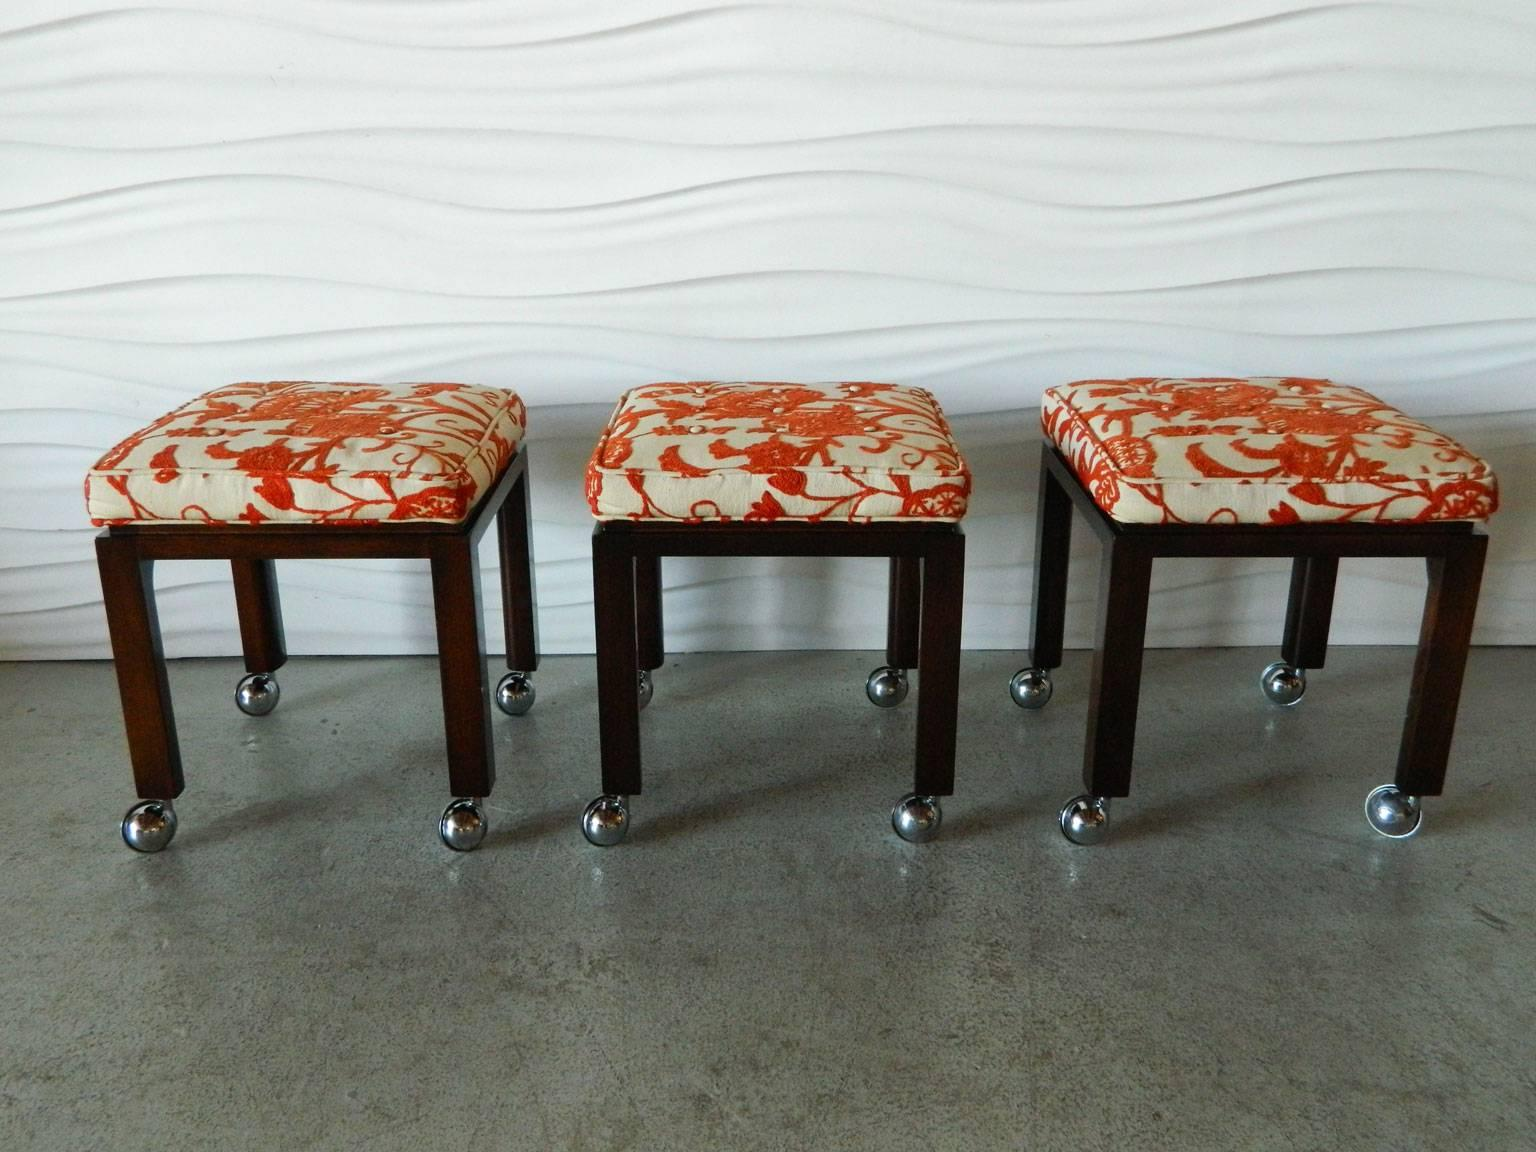 Charming Classic 1960s Harvey Probber Stools With Original Finish, Upholstered  Crewel Work Seats, And Casters